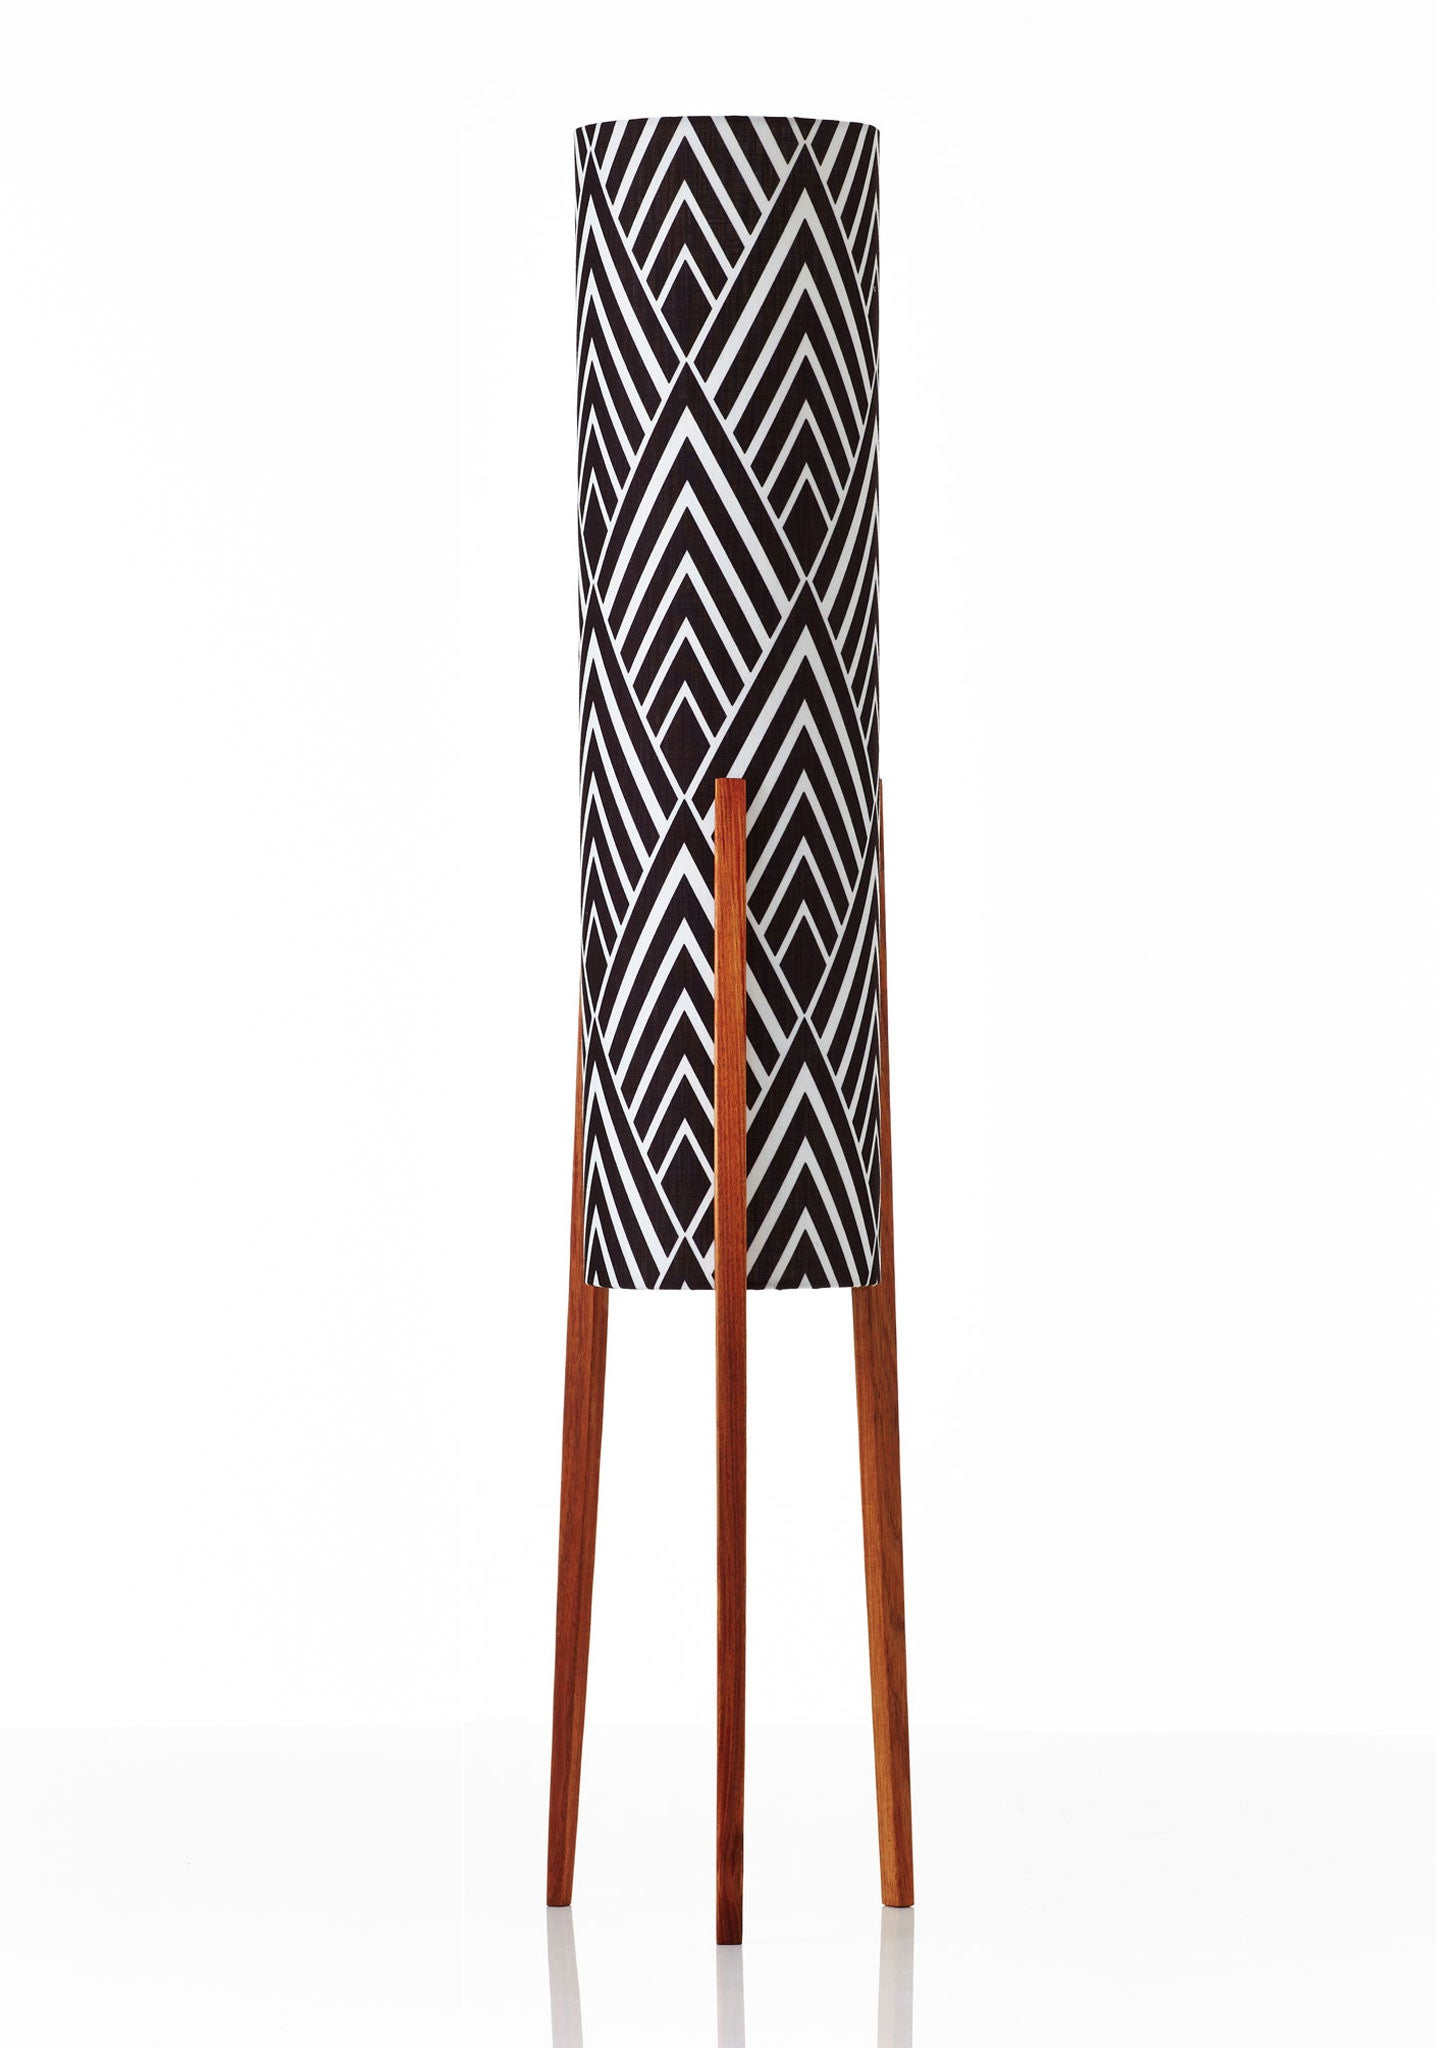 Rocket Floor Lamp Medium - Harlow Black